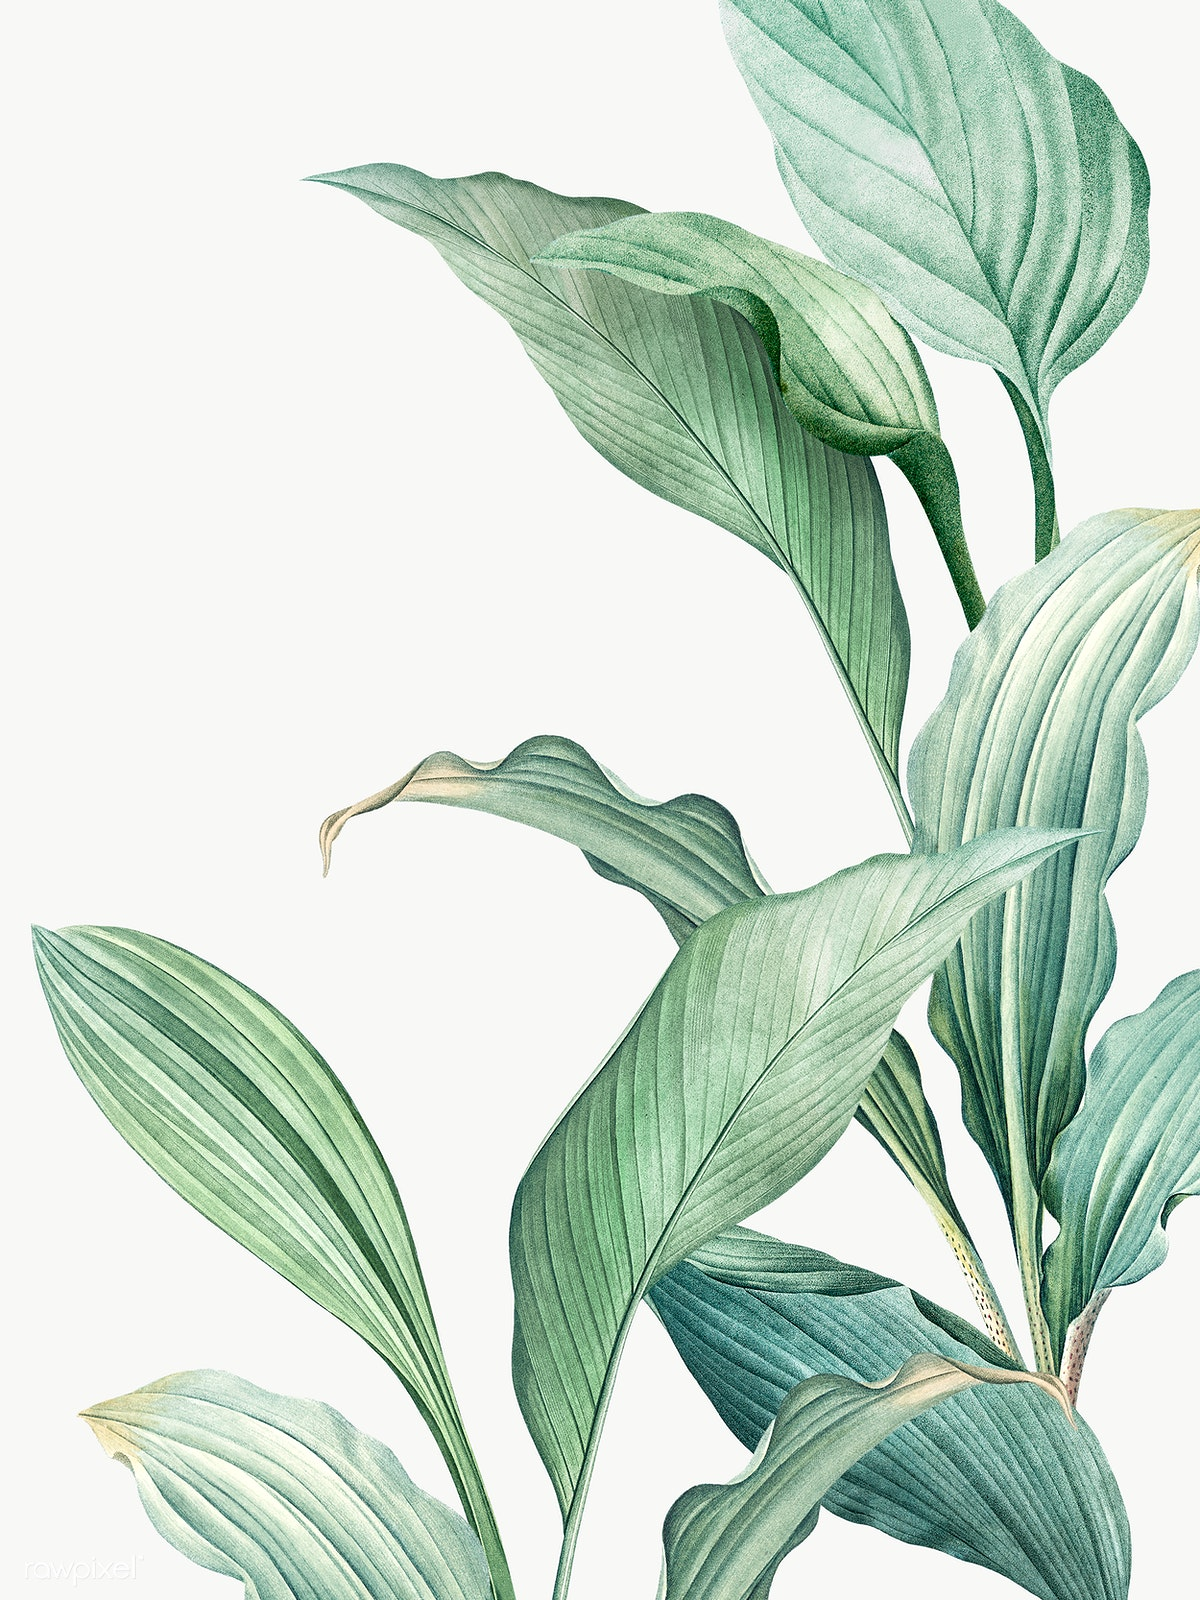 Bamboo Illustration